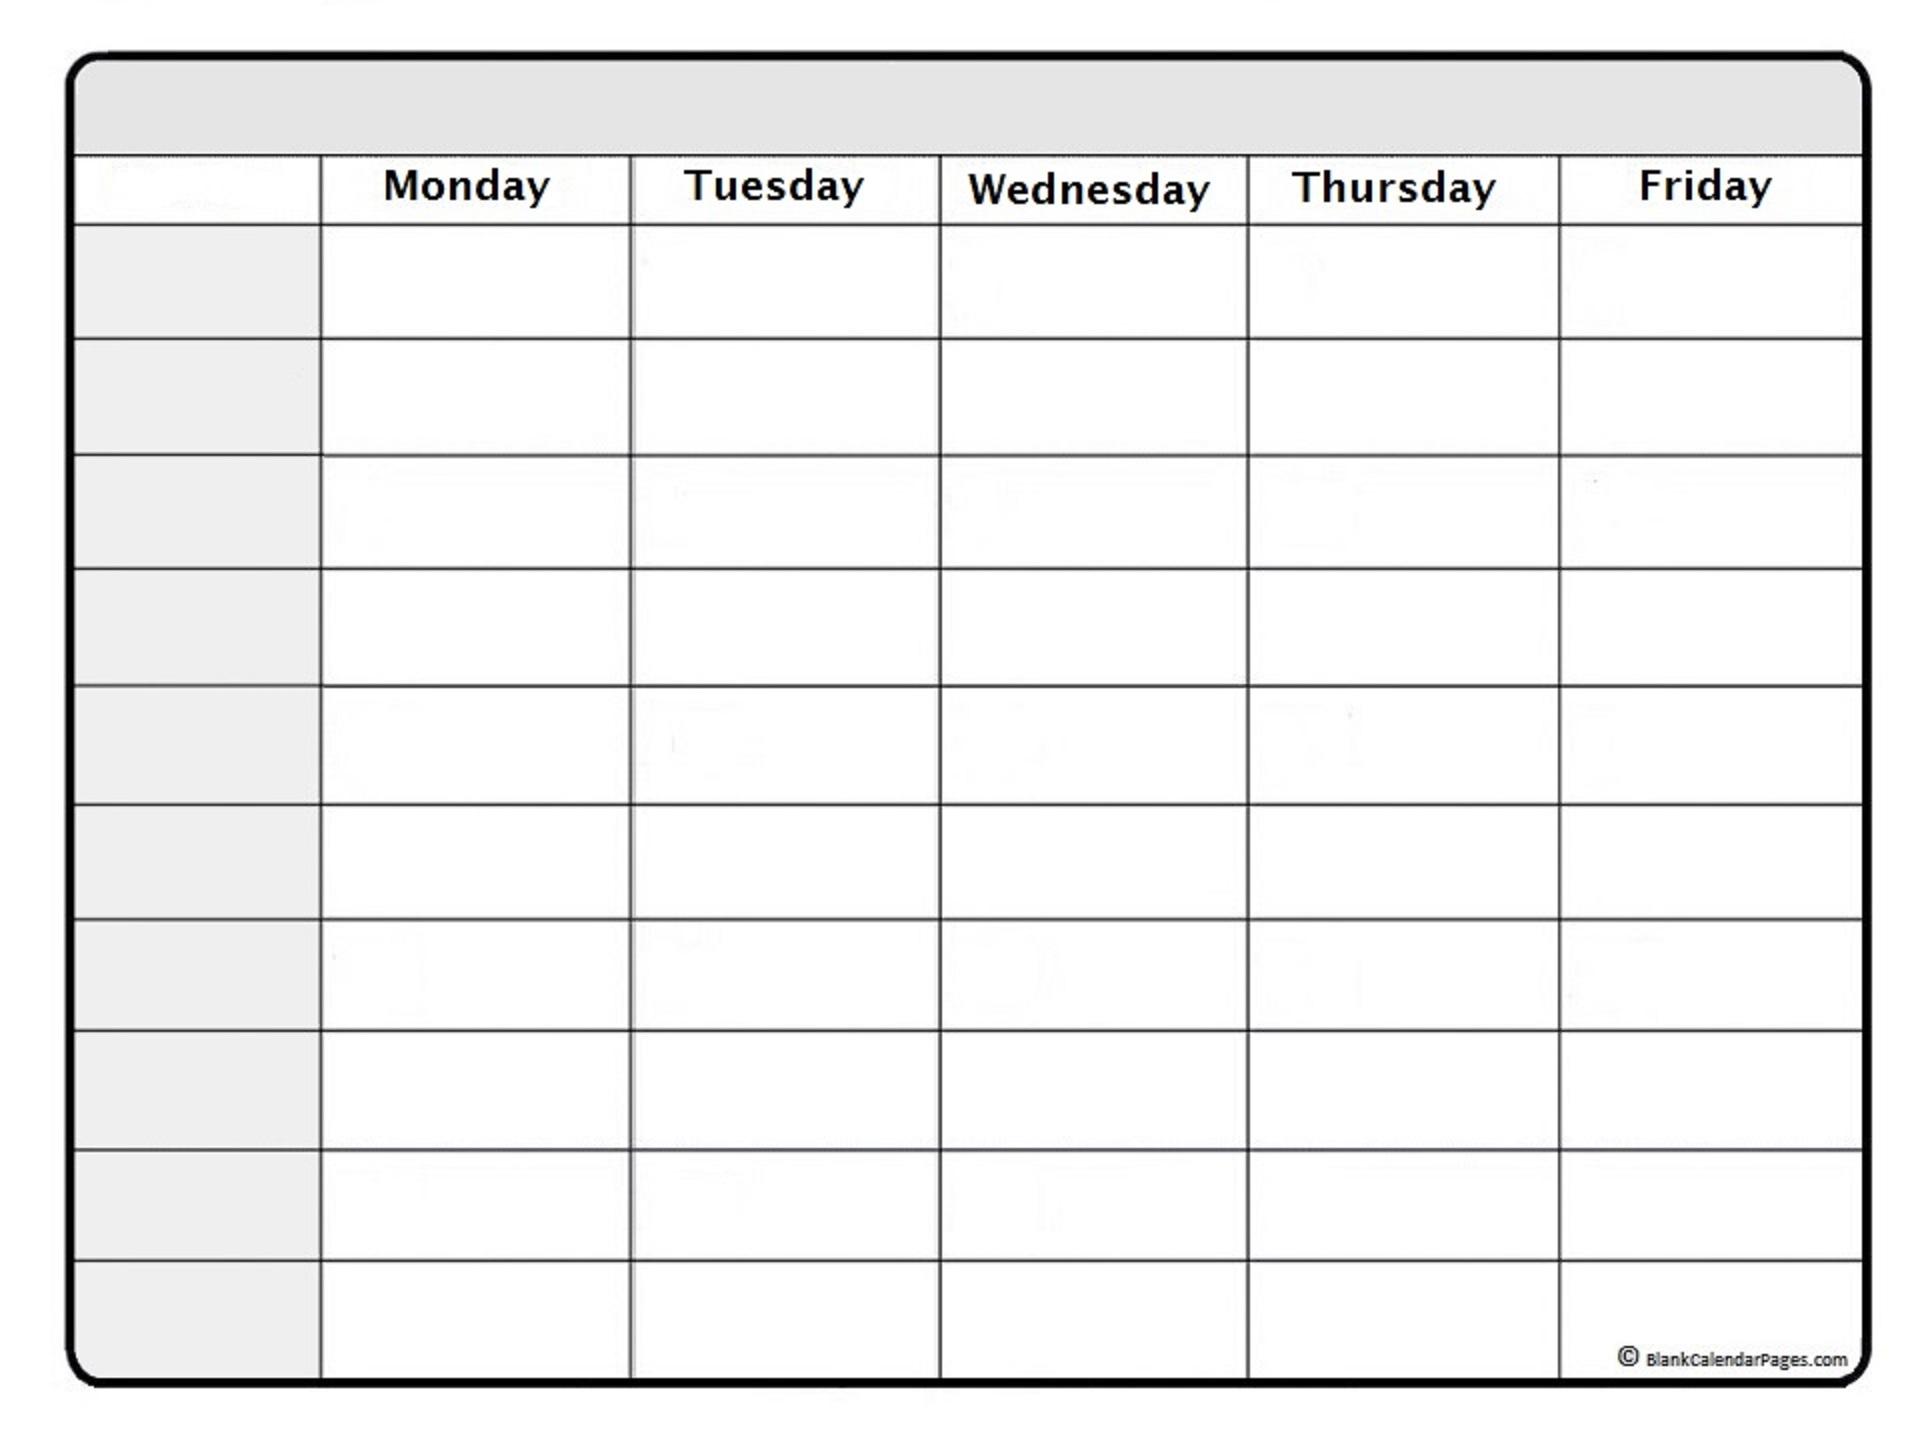 007 Blank Weekly Schedule Template Ideas Stirring Printable in Weekday Calendar Printable